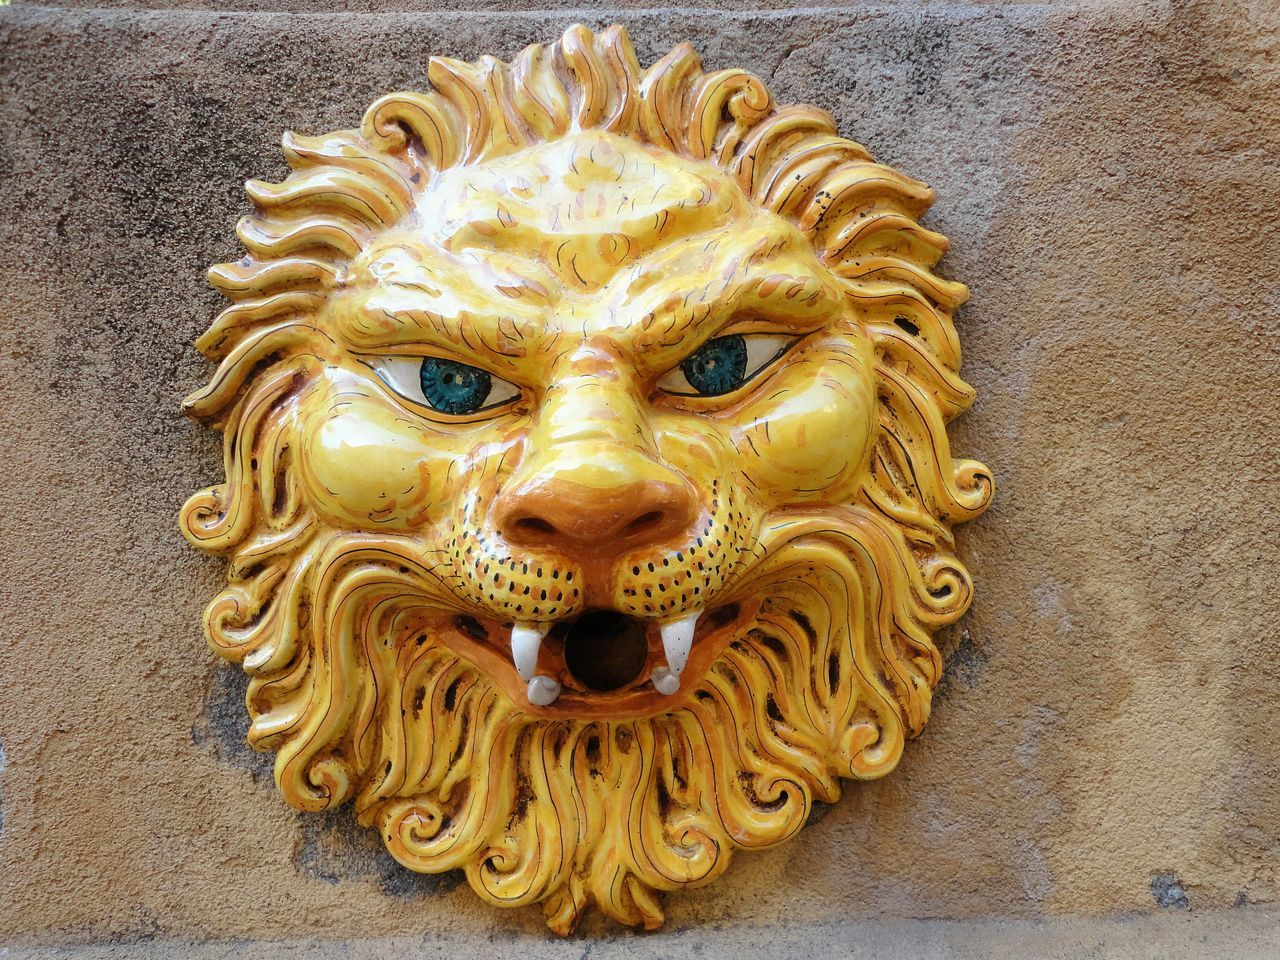 Animal Animal Themes Art Art And Craft Artisanat Artistic ArtWork Carving - Craft Product Ceramic Close-up Lion Sicilian Art Sicily Yellow